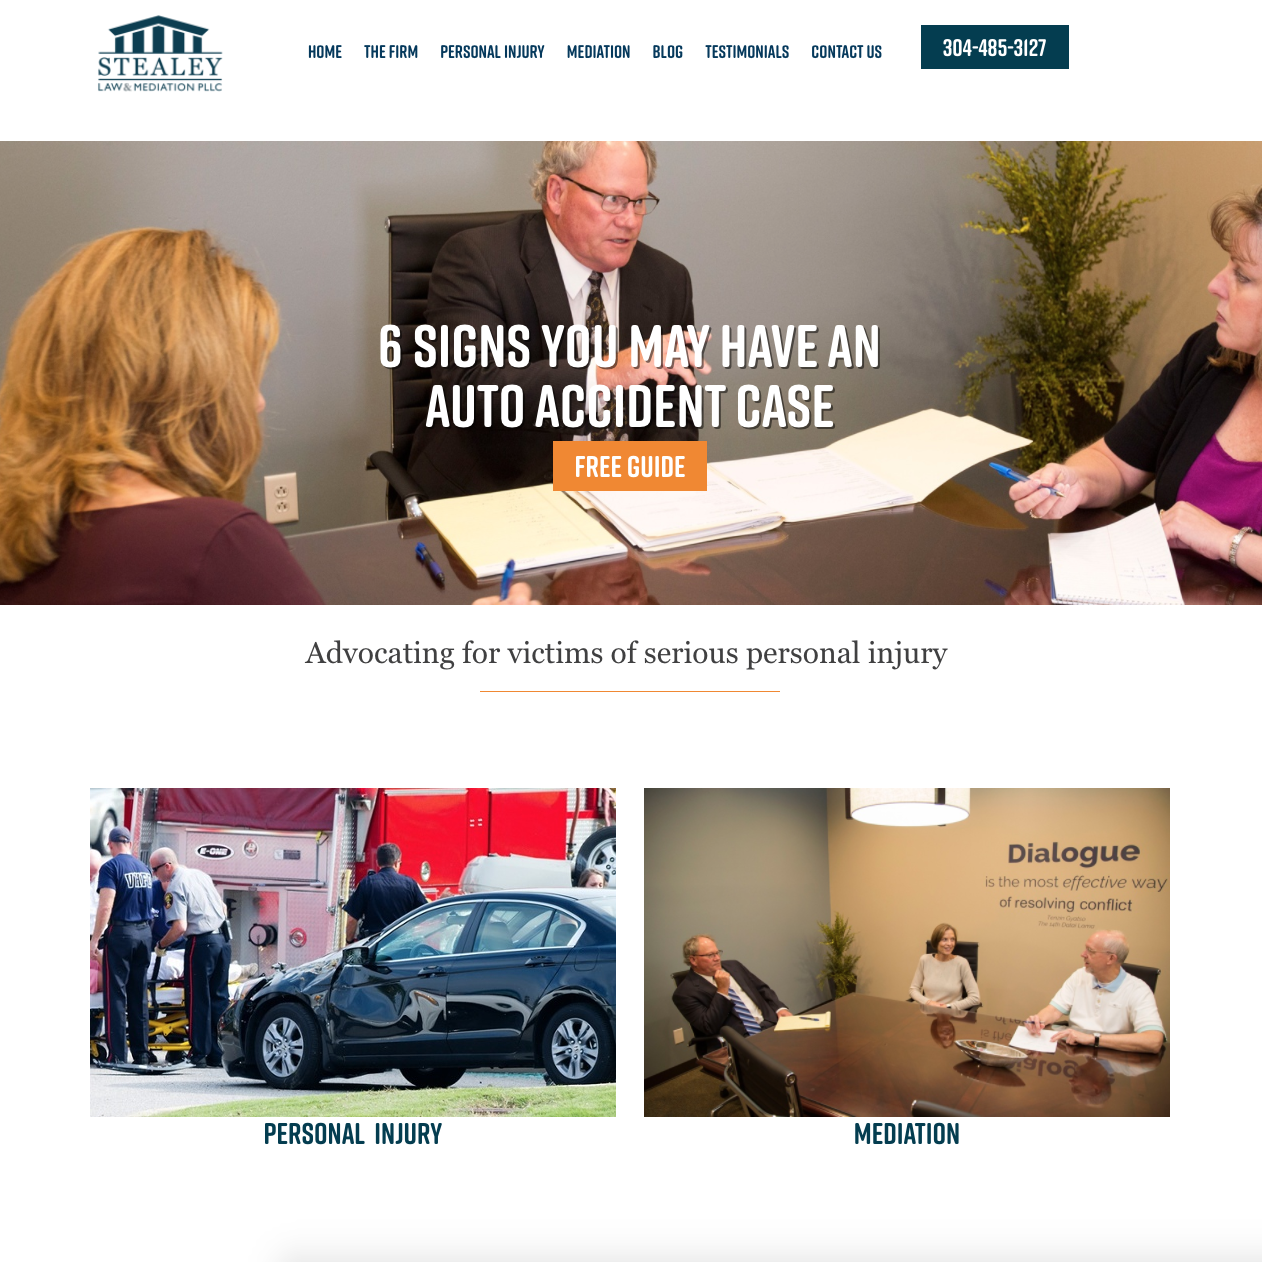 Stealey Law & Mediation Website Redesign